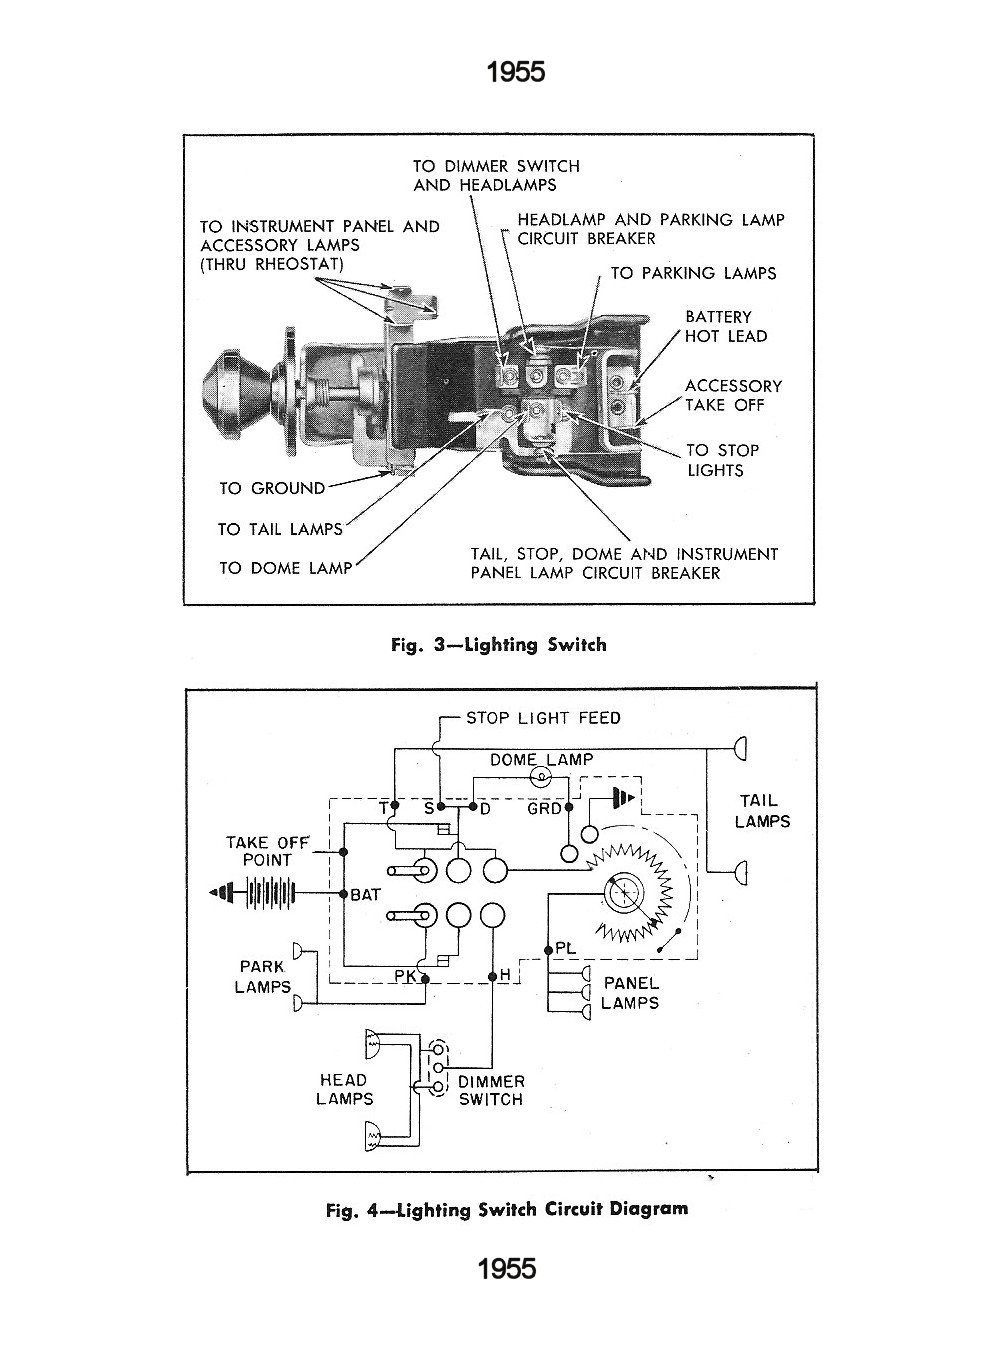 Strange 1984 Chevy C10 Fuse Box Diagram Basic Electronics Wiring Diagram Wiring Digital Resources Indicompassionincorg